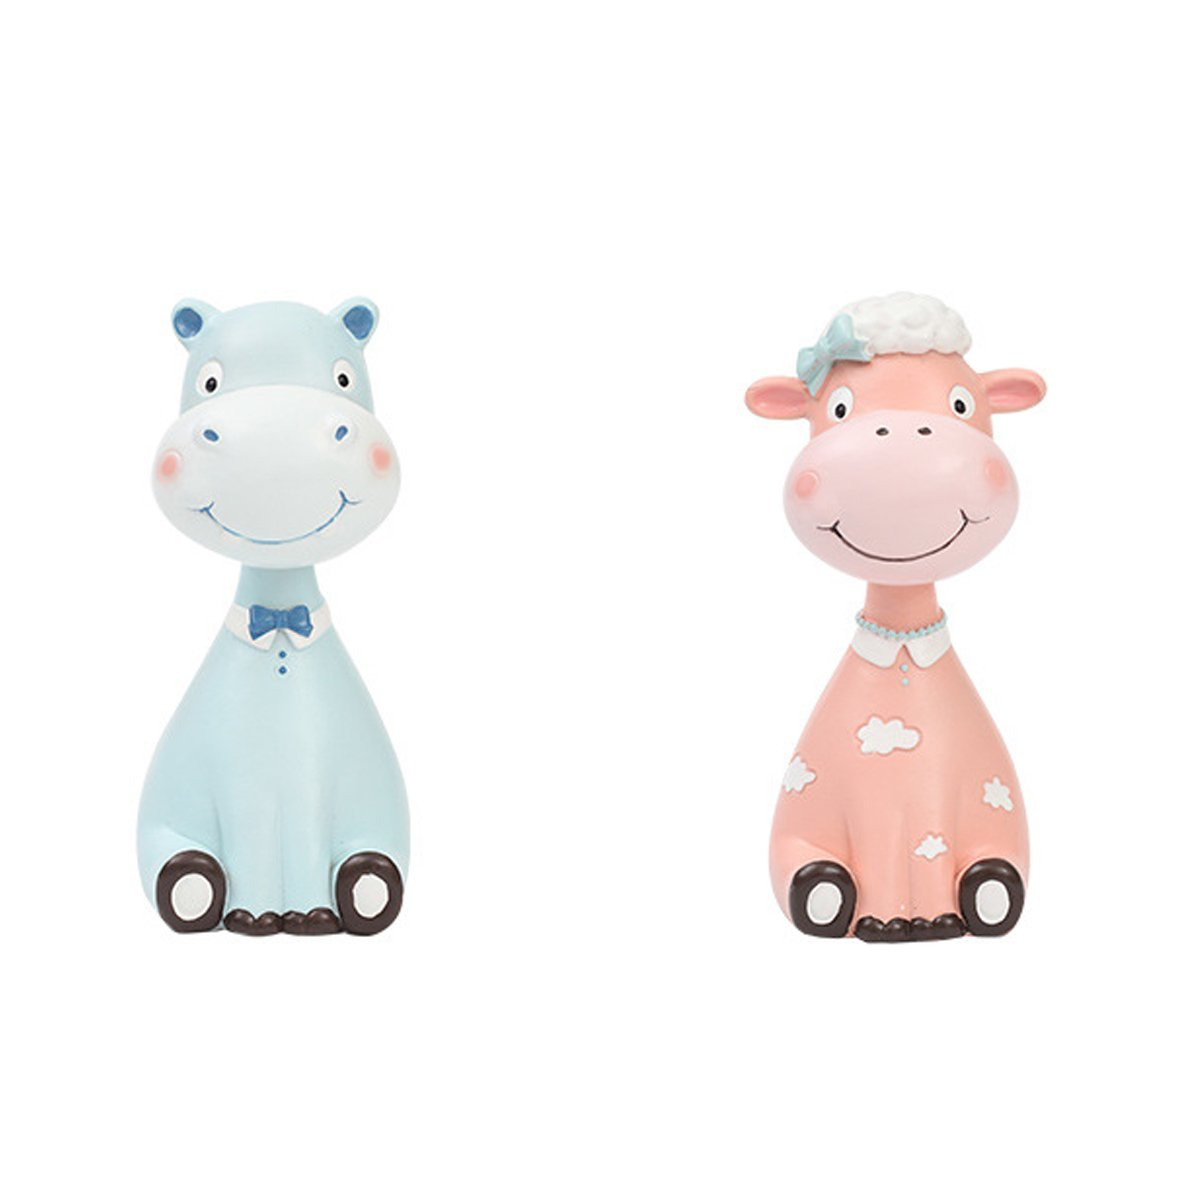 Gift for Christmas or Birthday to Your Loved Ones Adorable Animals Zoo Eyeglass Spectacle in 2 pcs/Eyewear Holder by NaNa (Image #1)